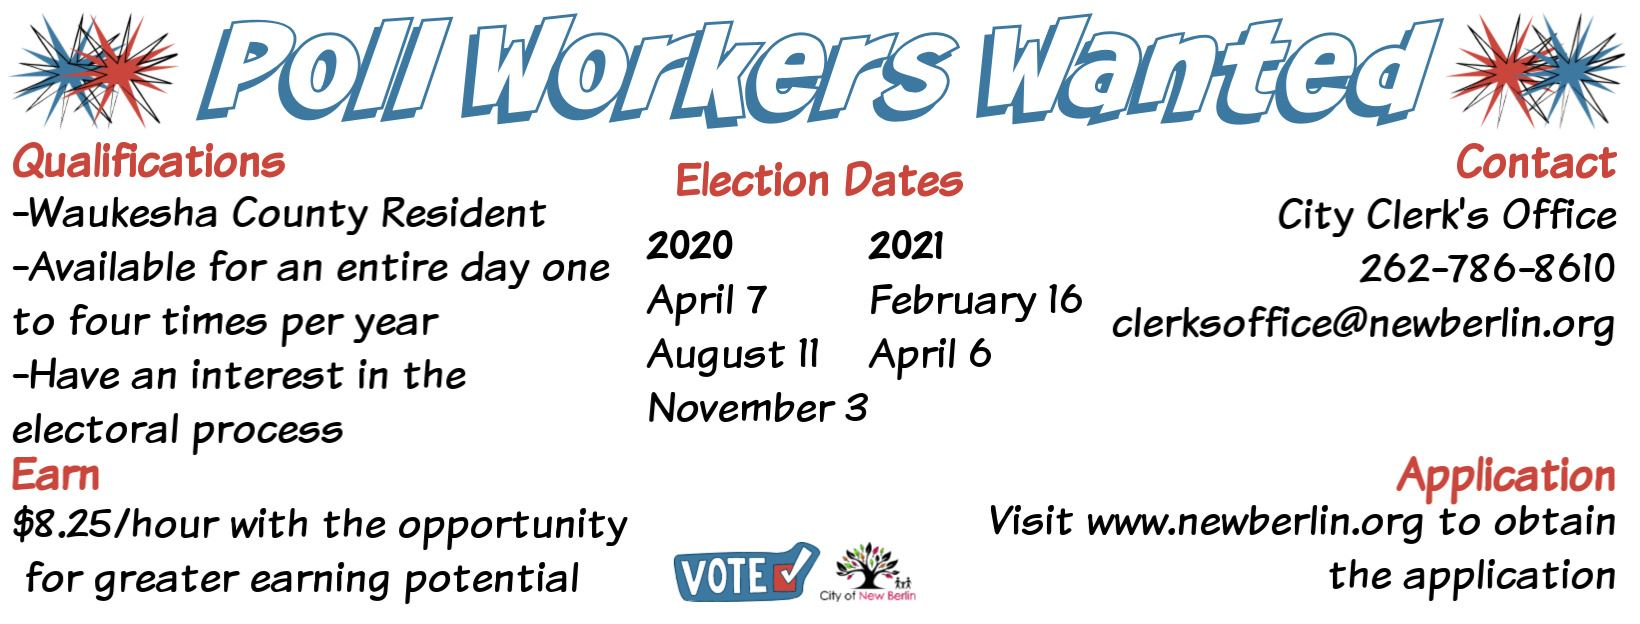 Poll workers wanted (1)